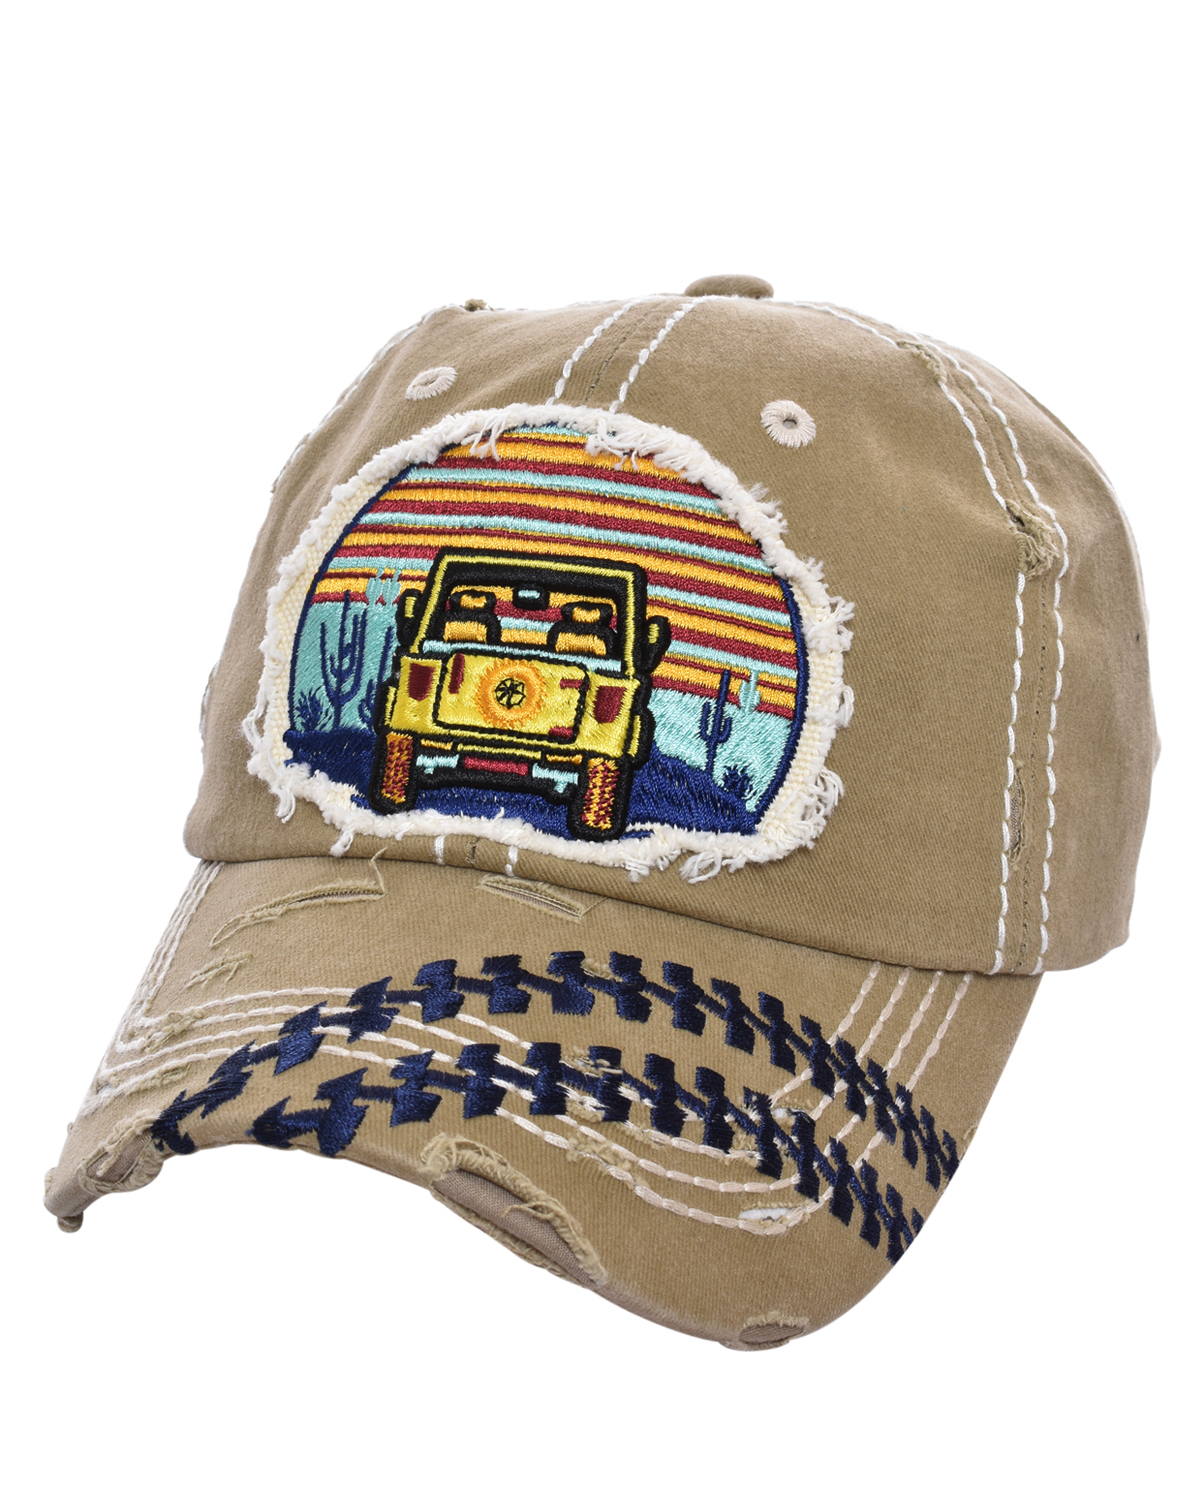 T13JEP02(KHA)-wholesale-cap-jeep-car-logo-sunset-cactus-tire-track-embroidered-vintage-torn-stitch-baseball-cotton(0).jpg